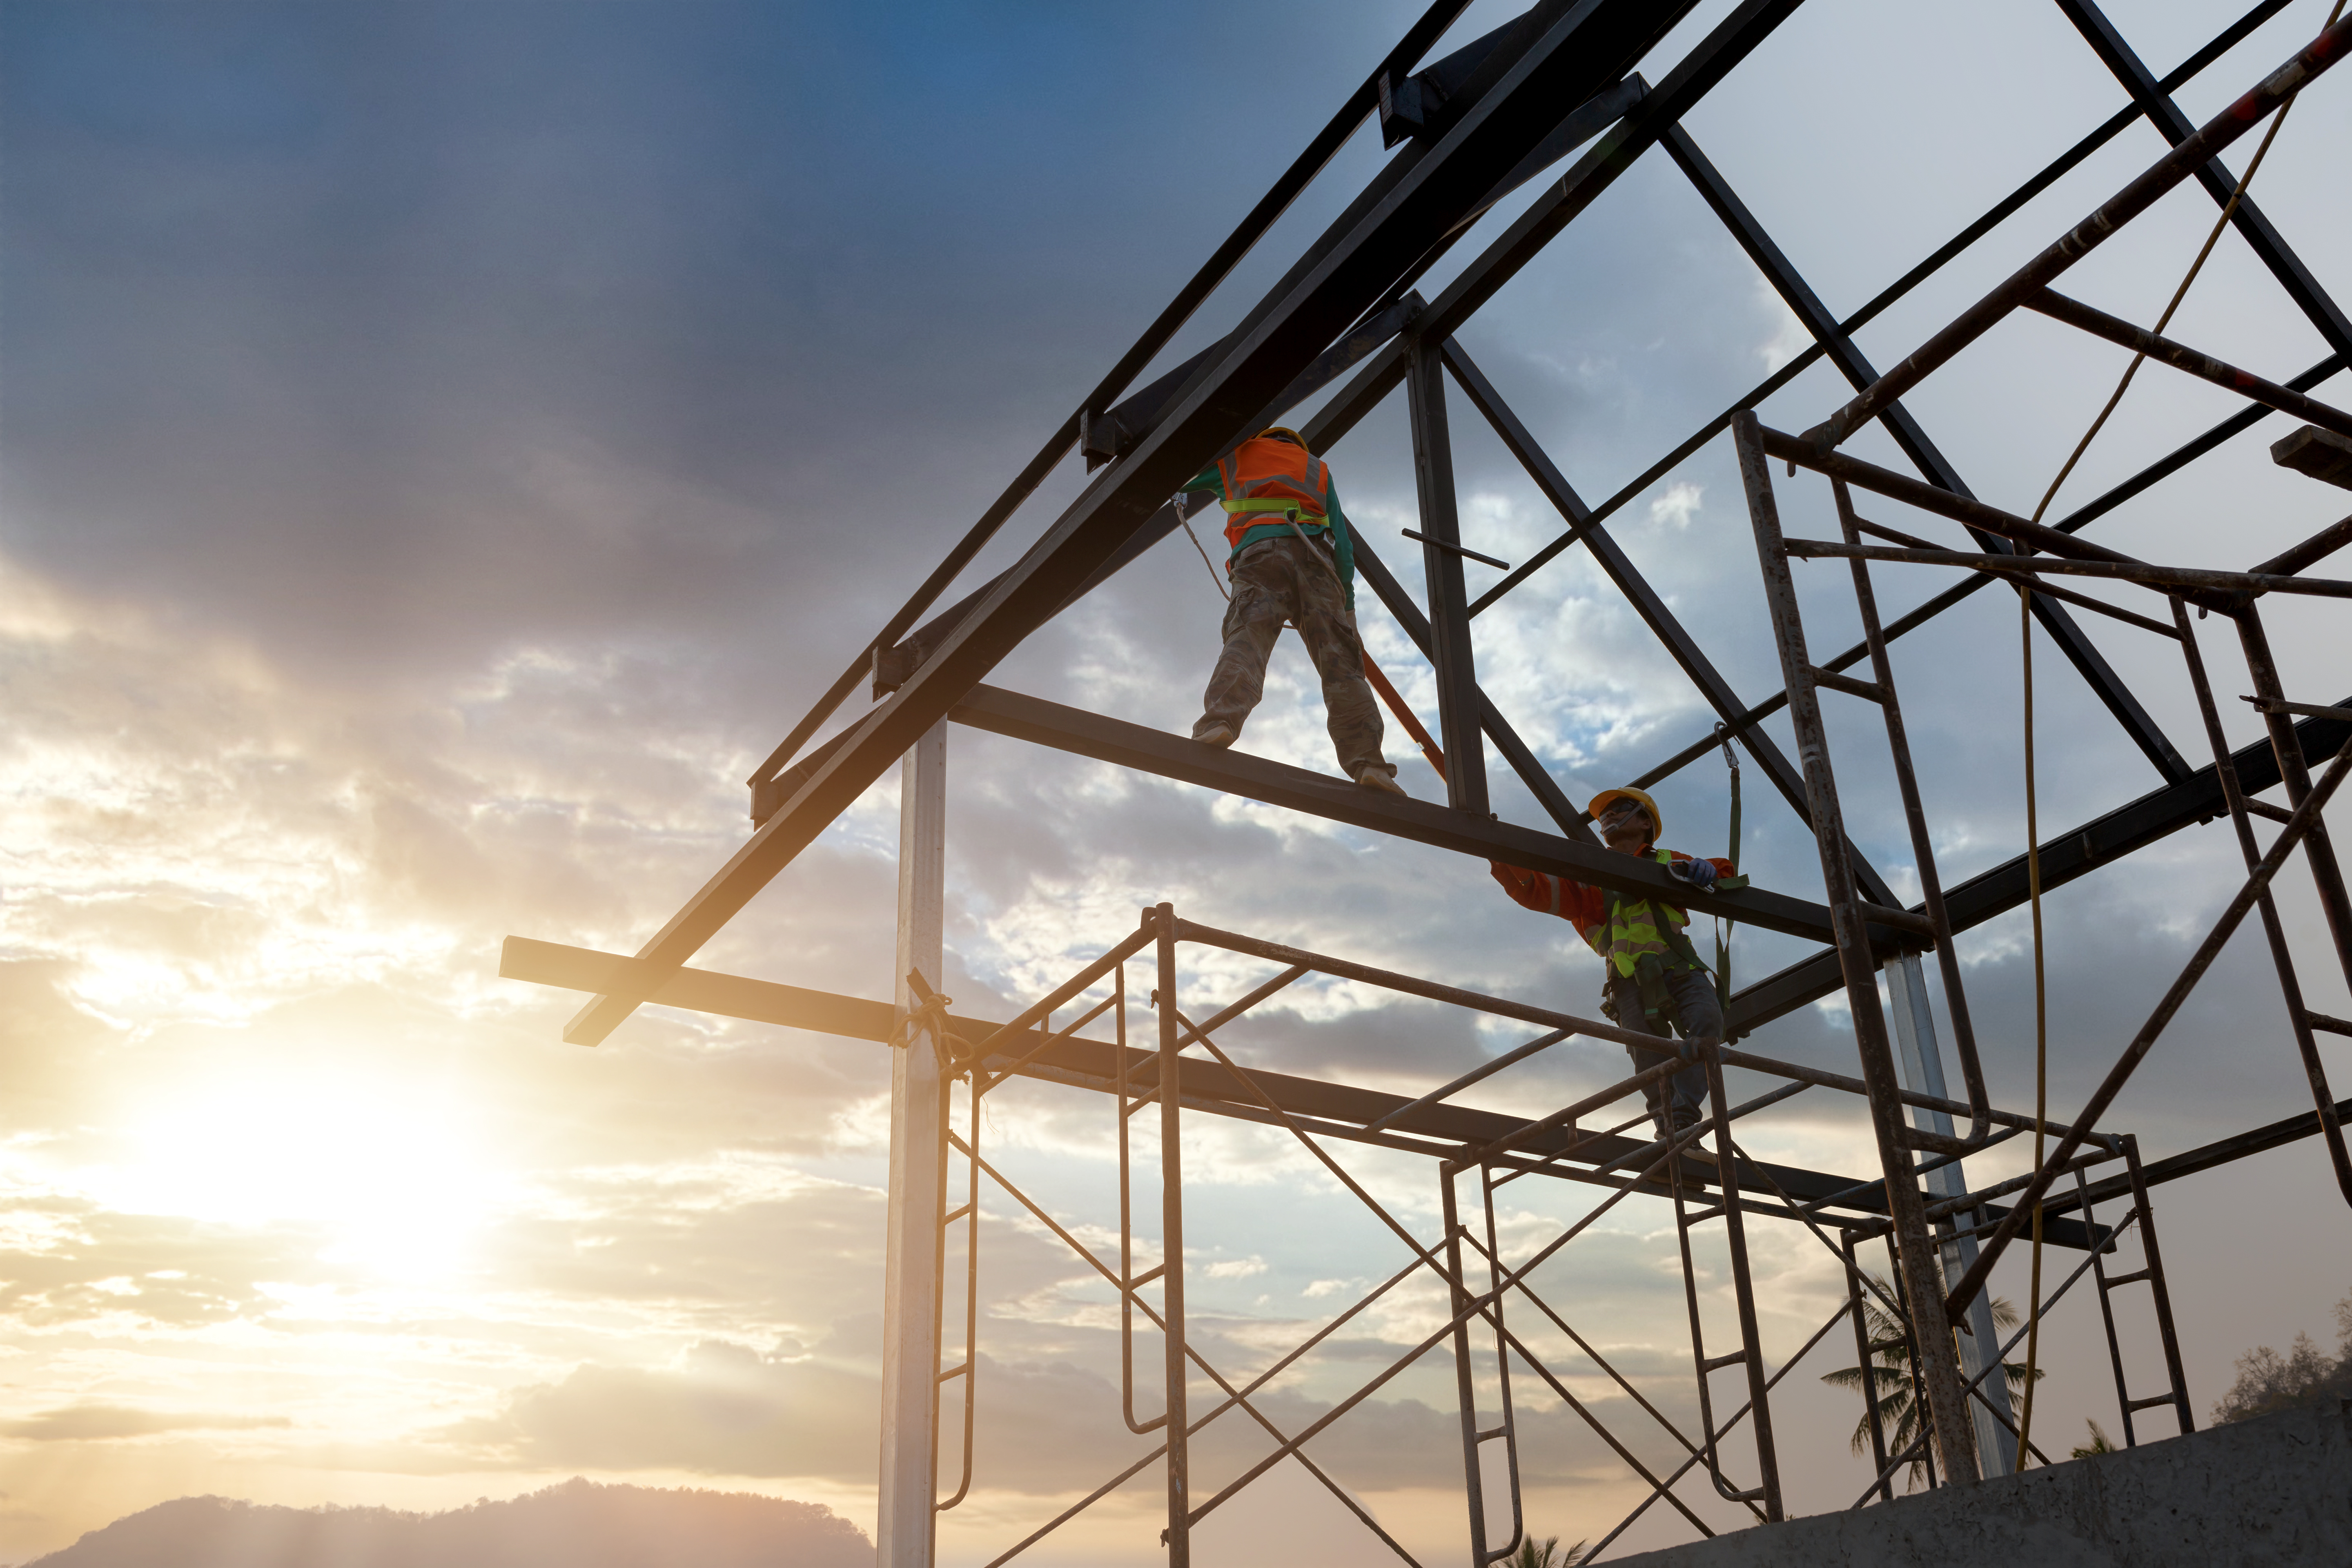 silhouette-construction-worker-roof-structure-construction-site-concept-safety-height-equipment.jpg